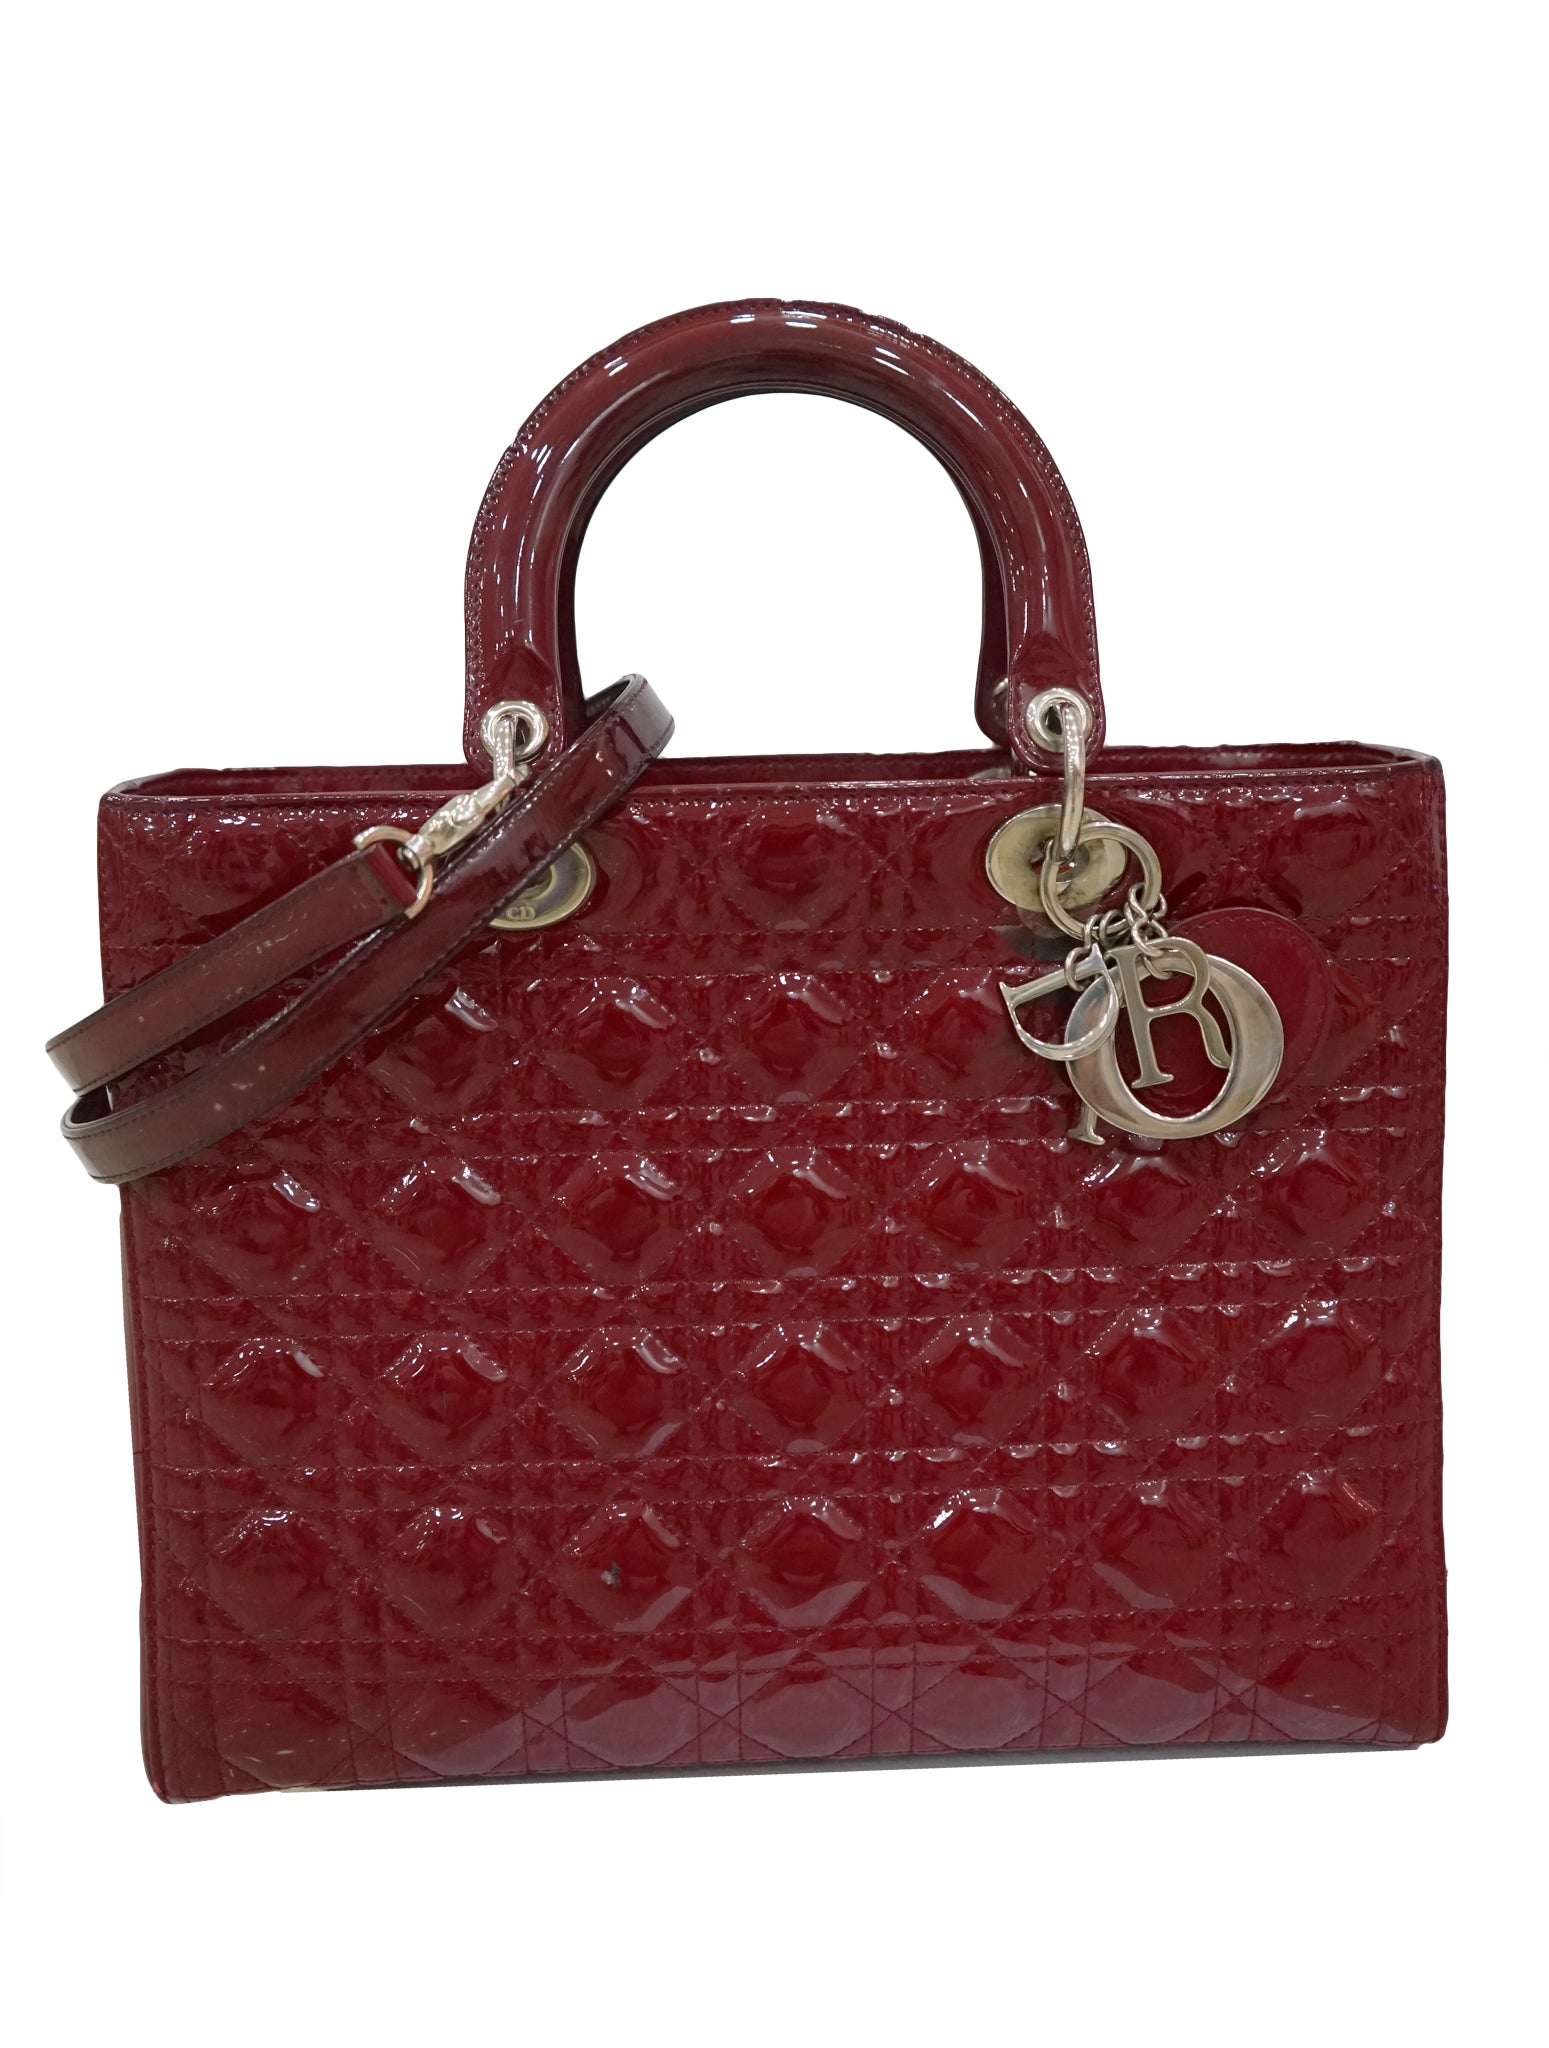 RED PATENT LEATHER LARGE LADY DIOR TOTE